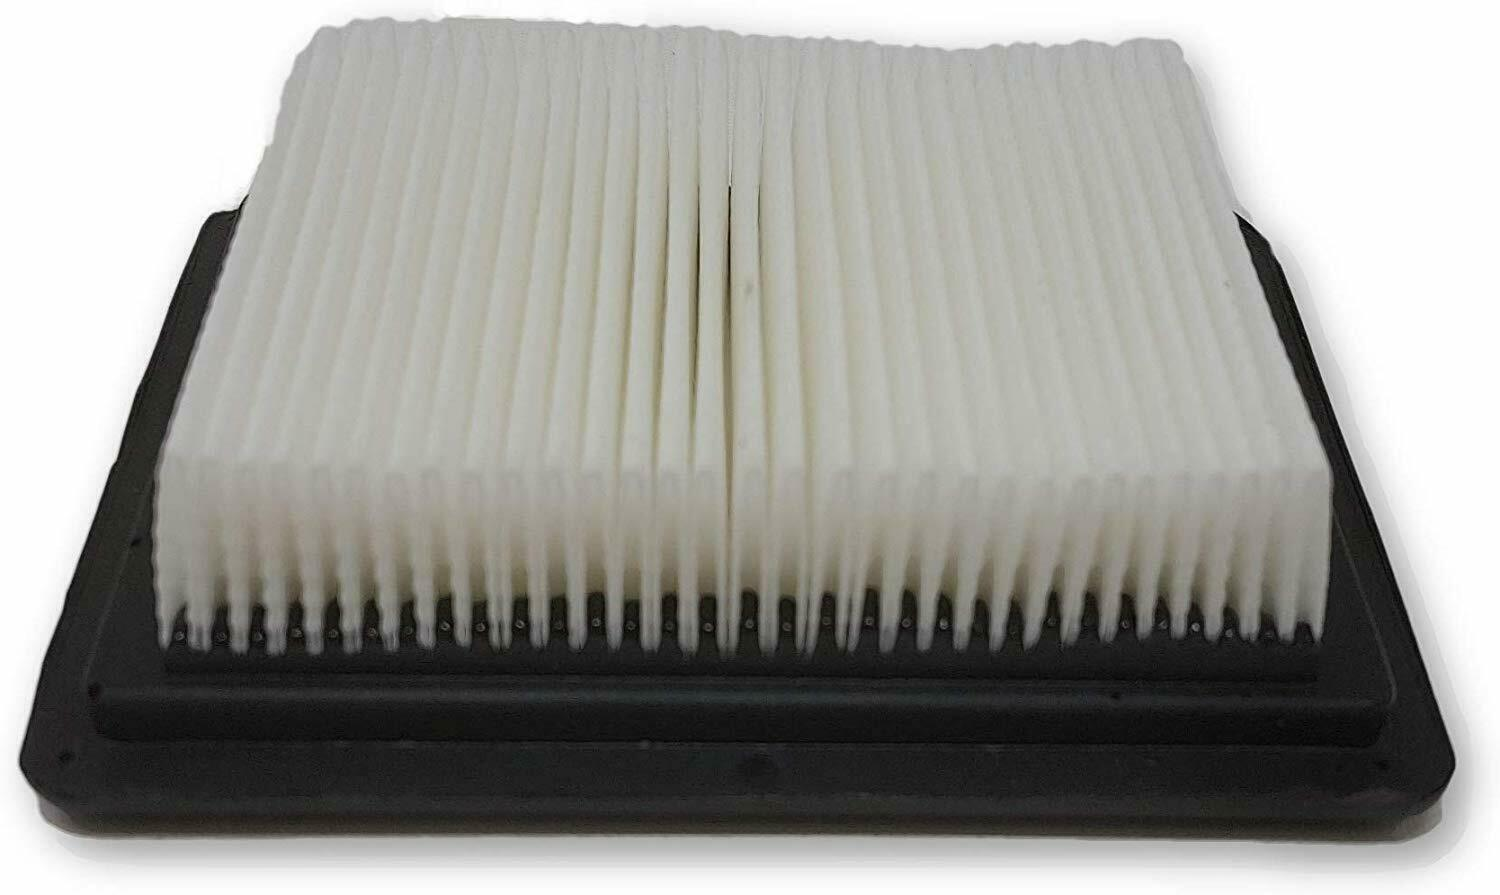 Washable HEPA Filter Replacement Part 40112050 for Hoover FloorMate Vacuums